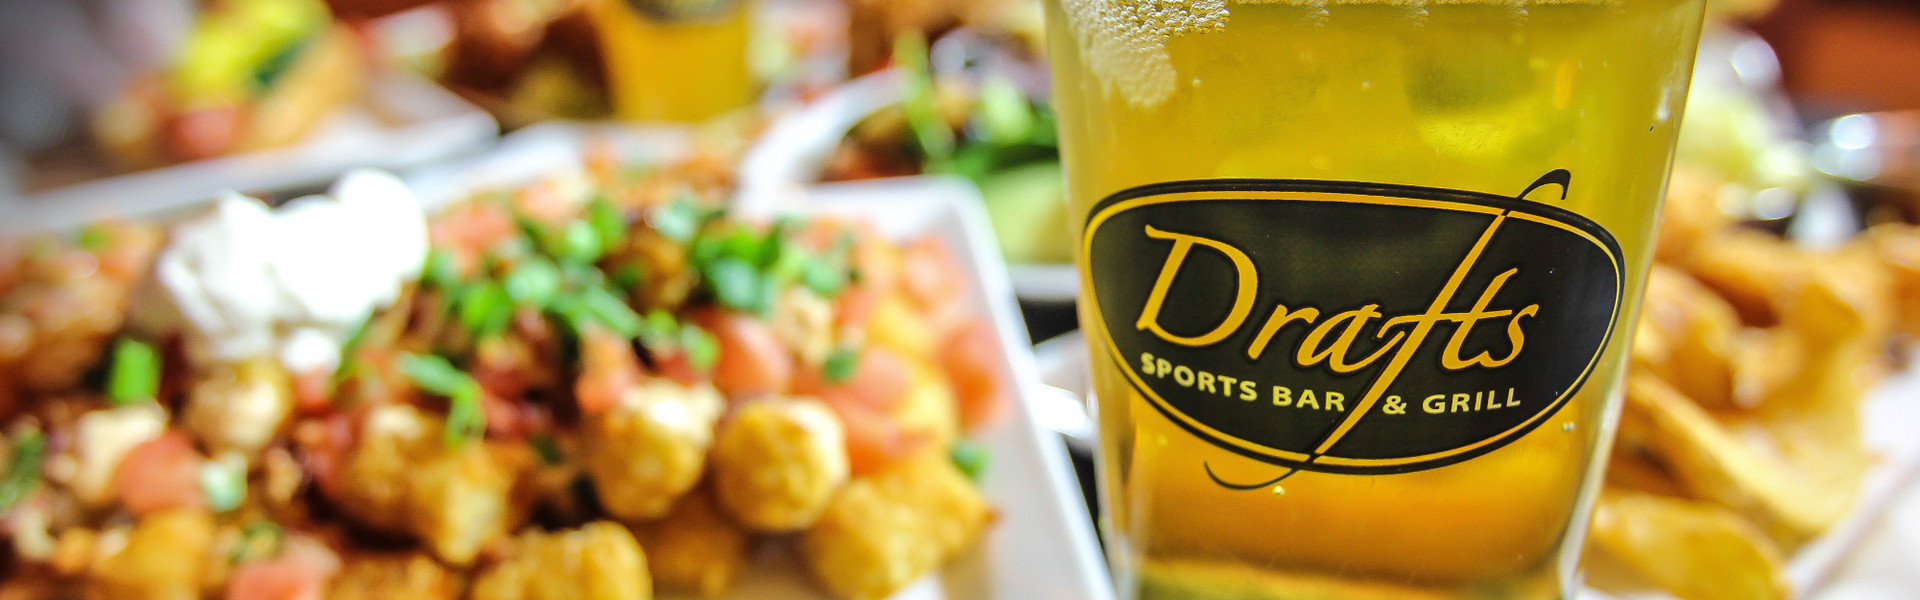 Drafts Sports Bar and Grill in Orlando, FL | Orlando Sports Bars | Westgate Lakes Resort & Spa